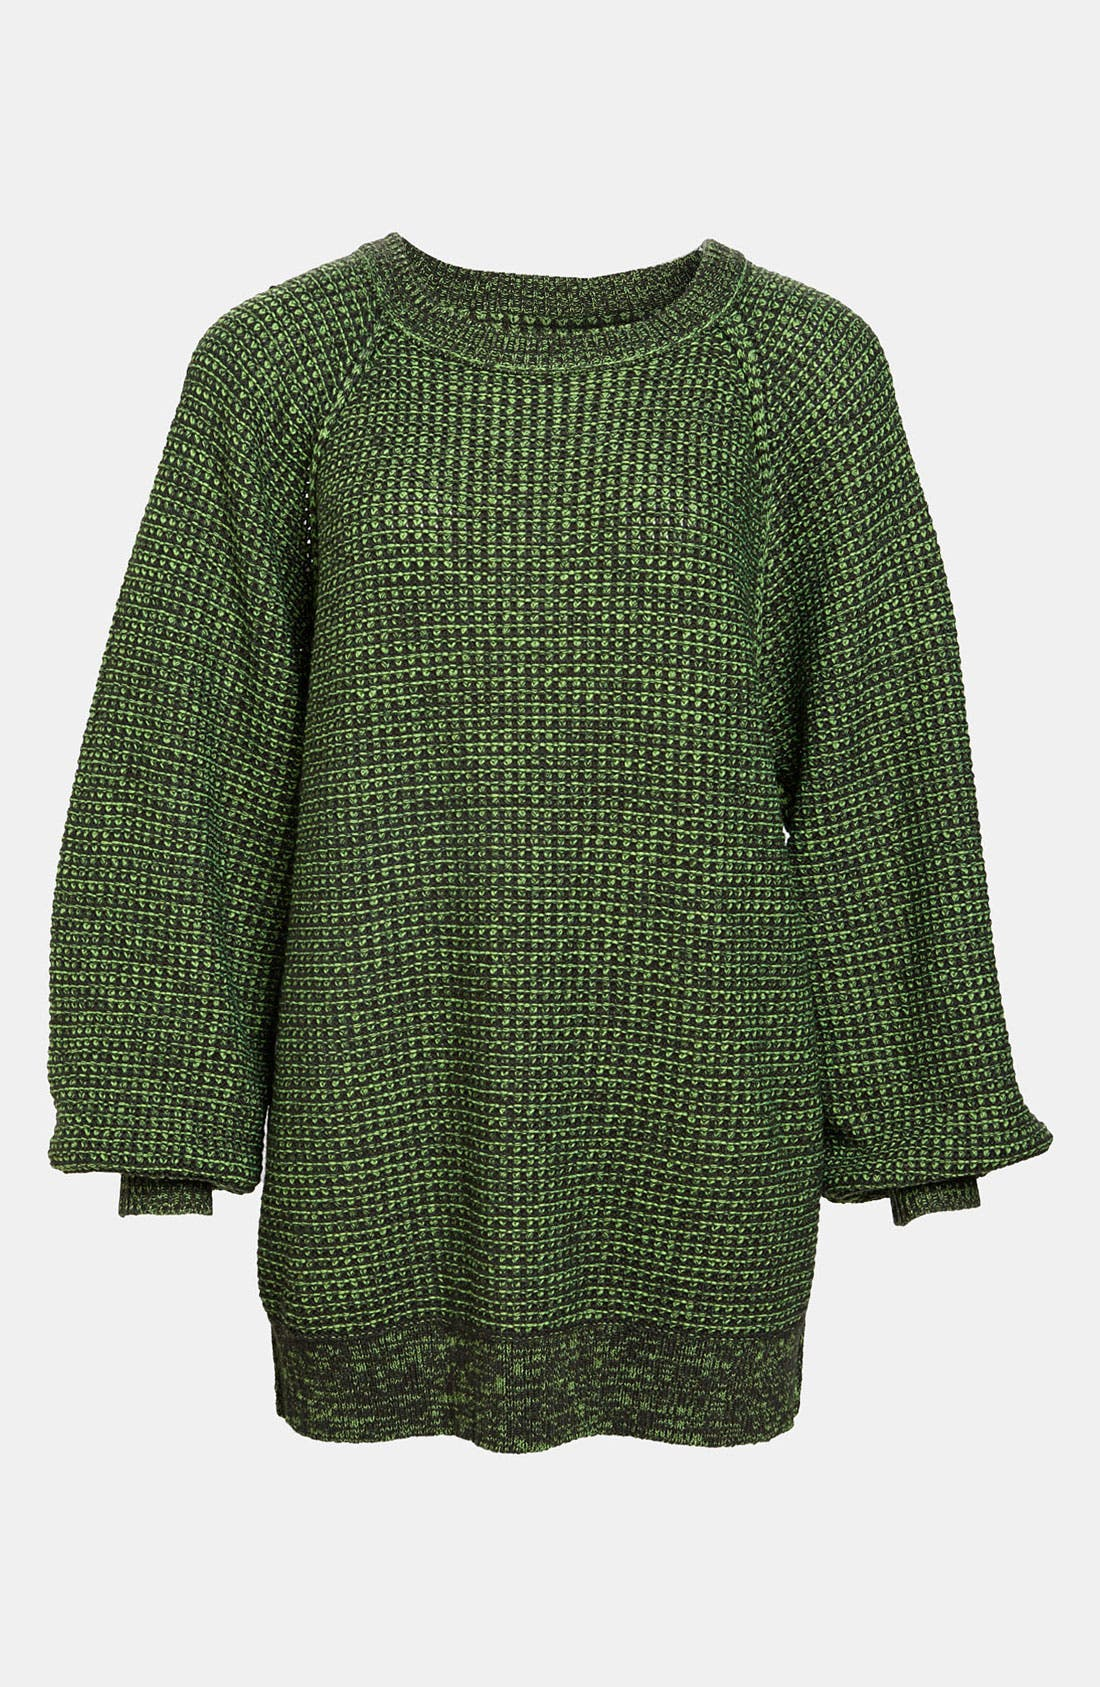 Alternate Image 1 Selected - Leith 'Track' Geometrical Knit Pullover